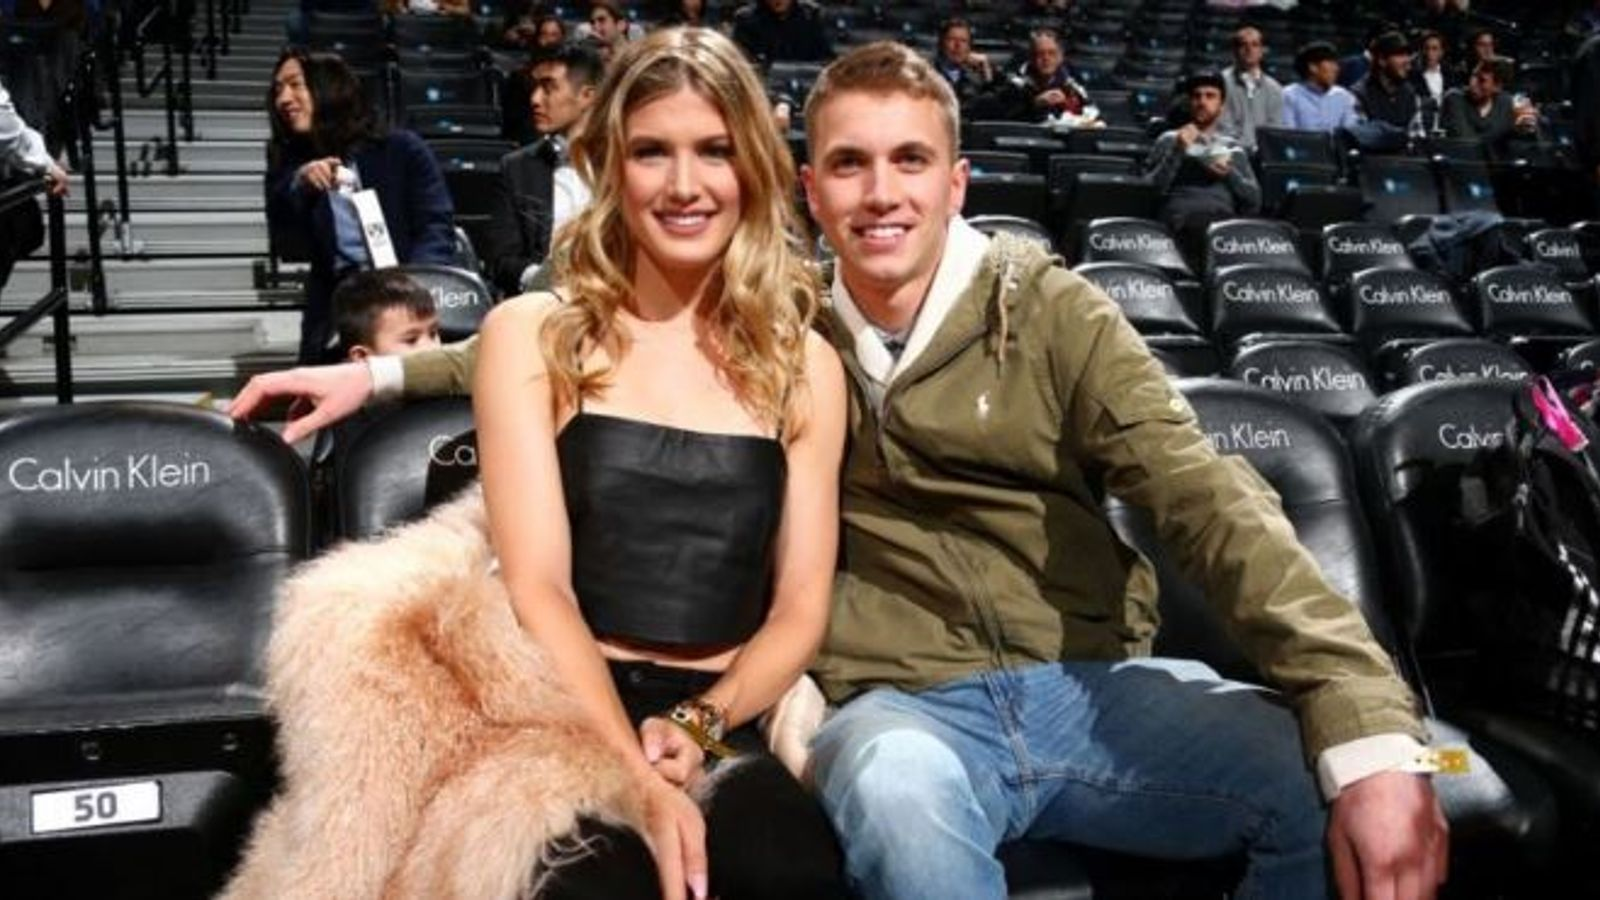 Eugenie Bouchard goes out on Super Bowl date   Tennis News